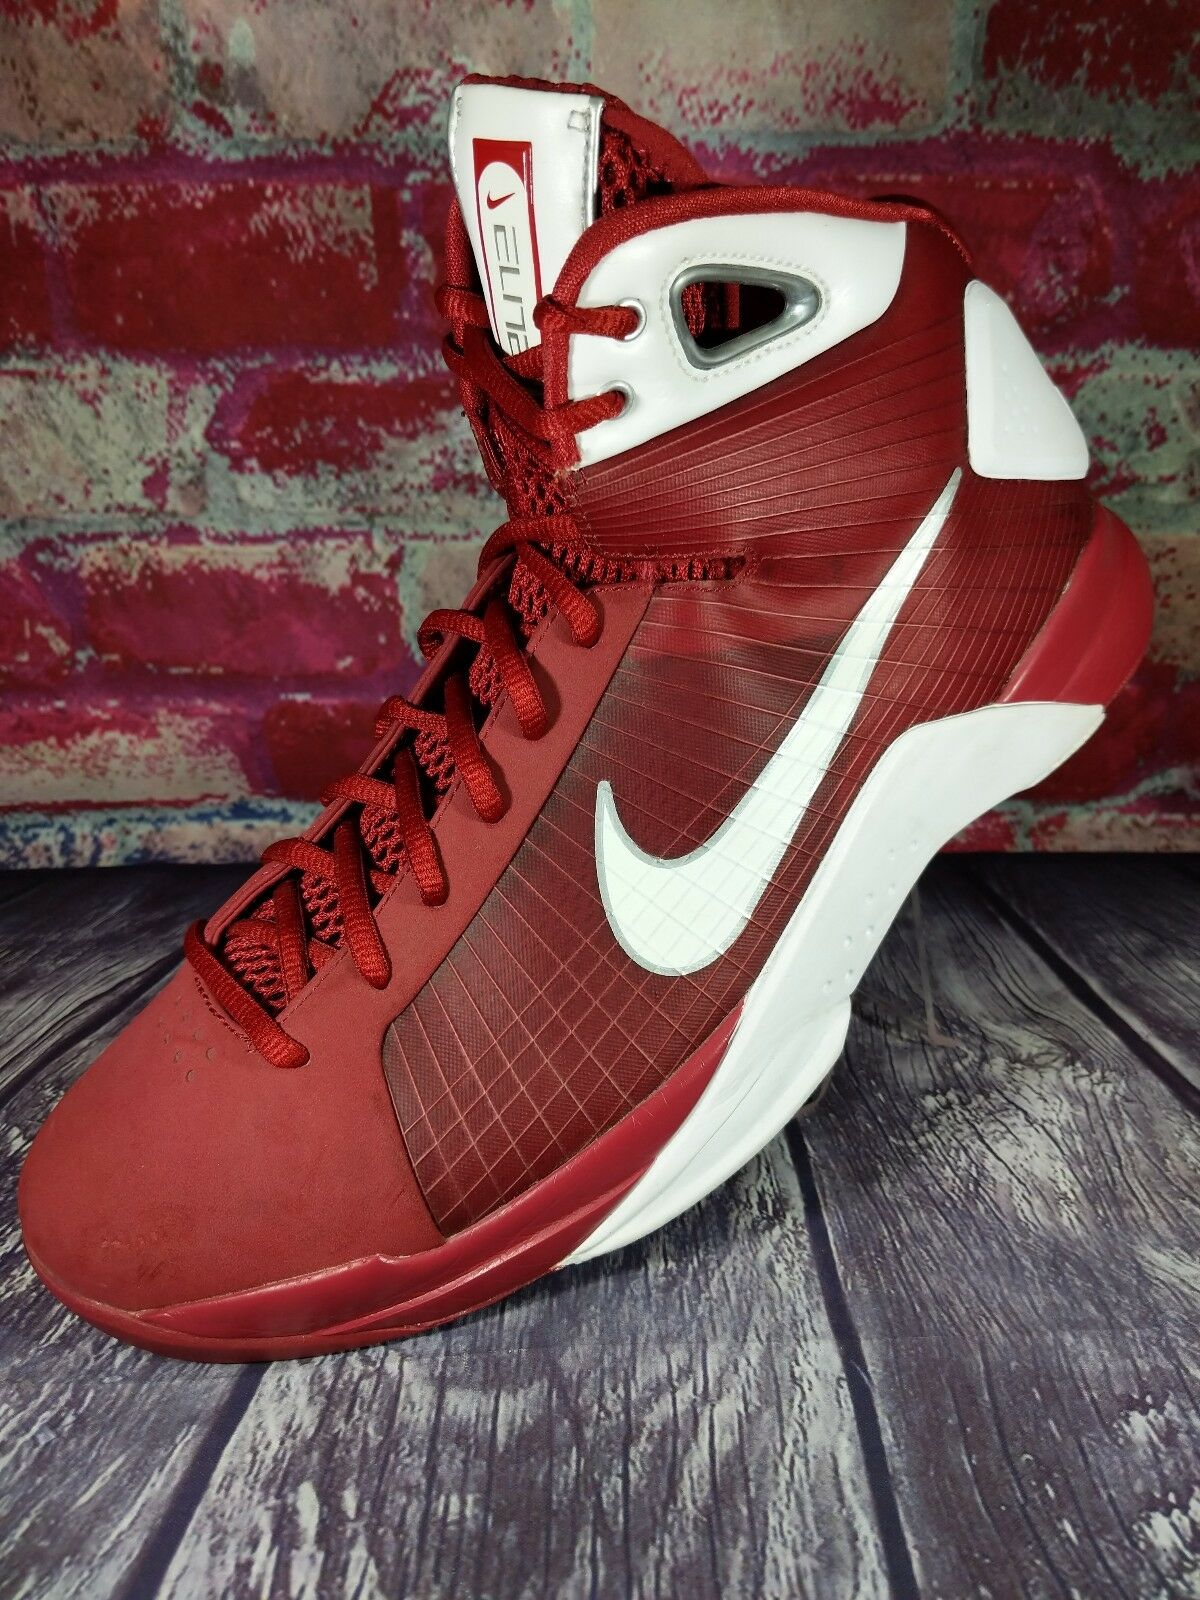 2008 Nike HYPERDUNK ELITE BASKETBALL SHOES MENS 12.5 HARVARD OKLAHOMA TEXAS A&M